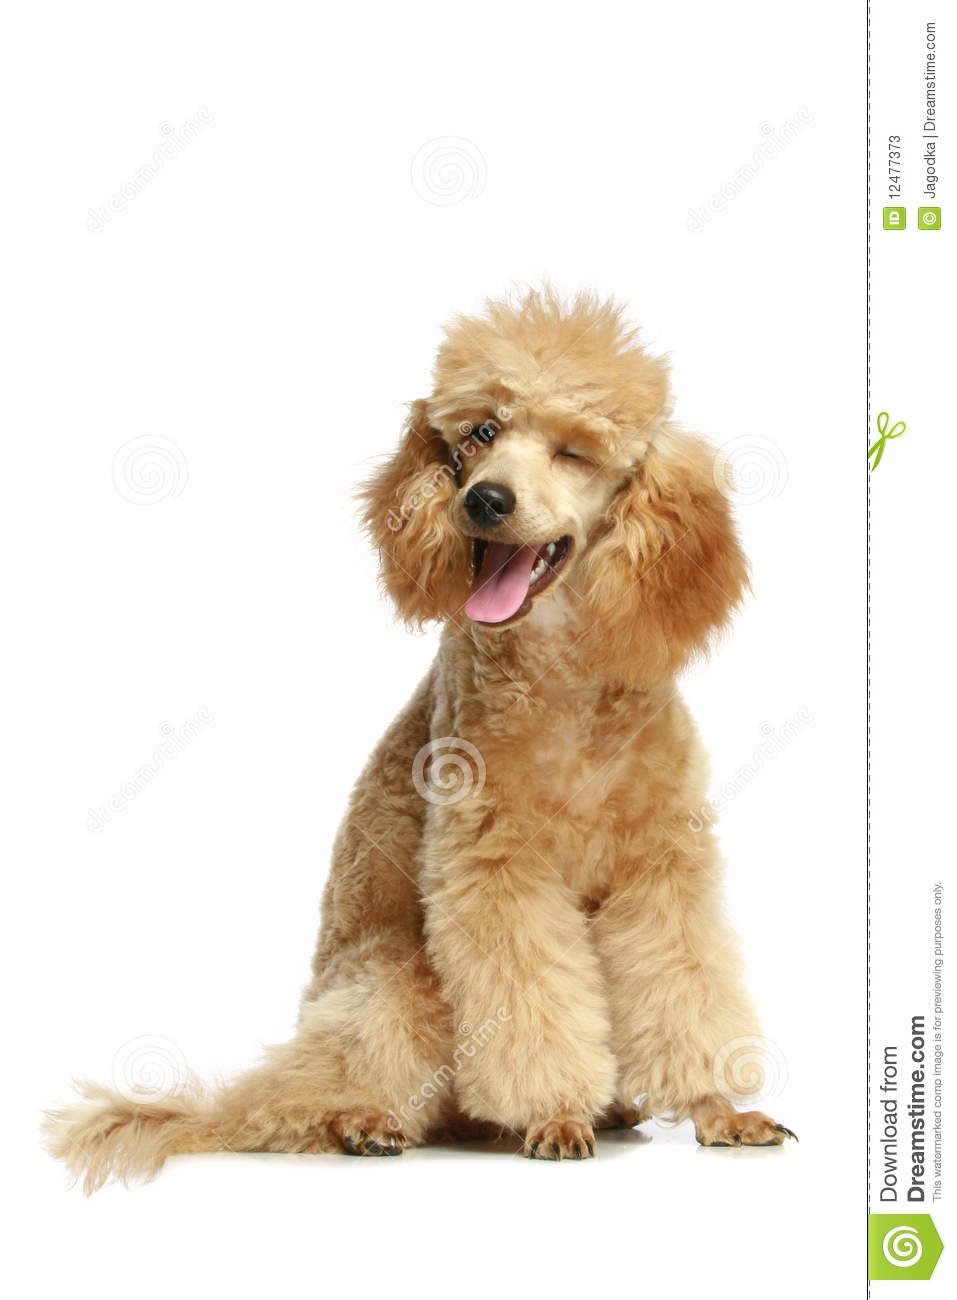 Small apricot poodle puppy